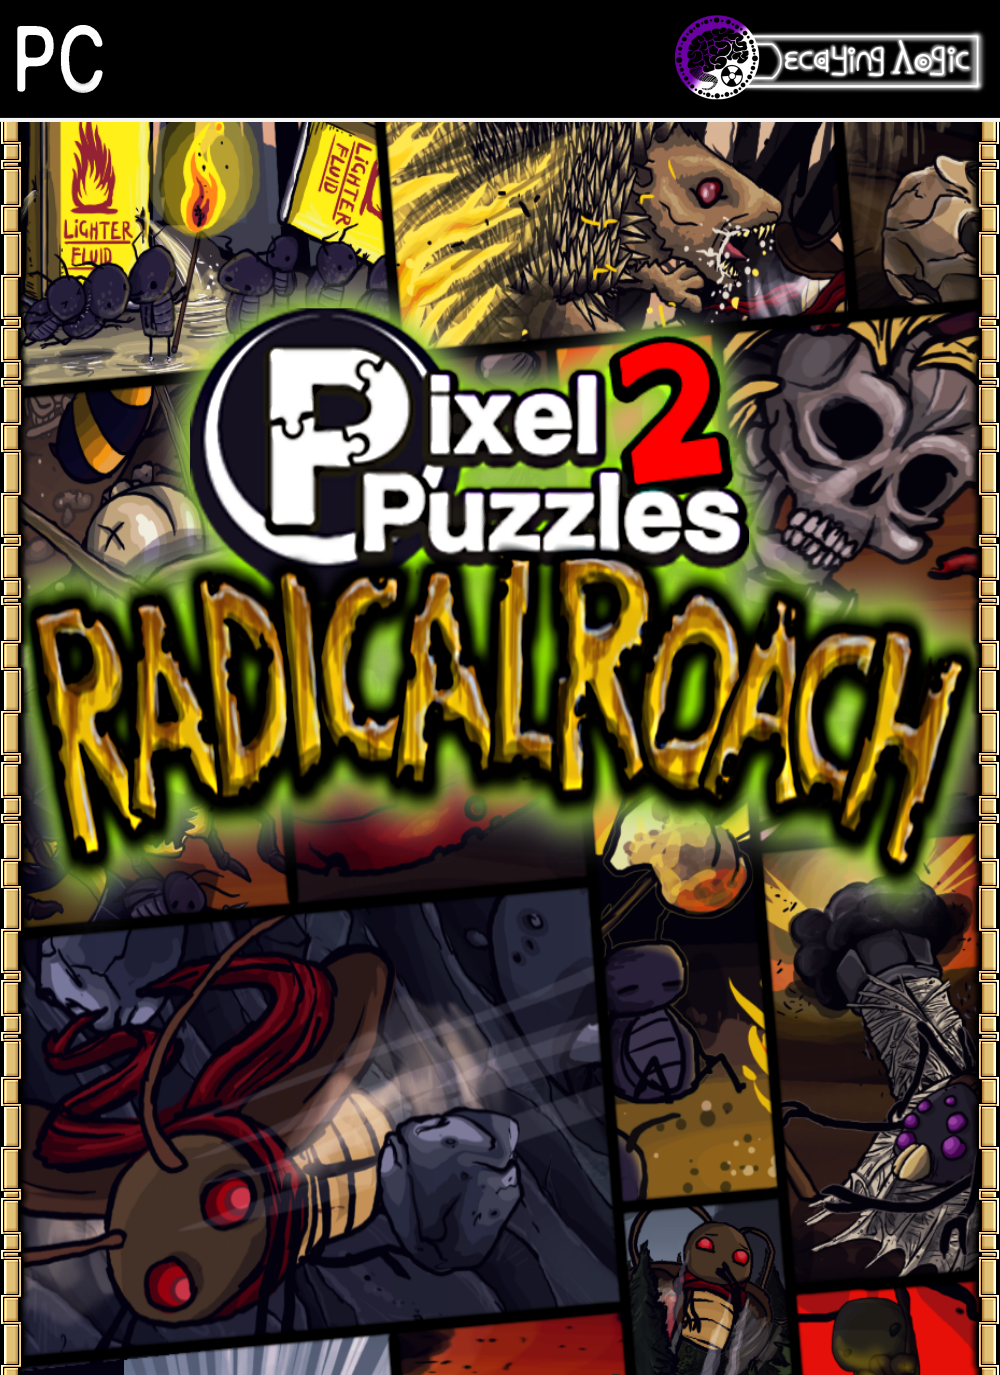 pixel-puzzles-2-radical-roach-pc-code-steam